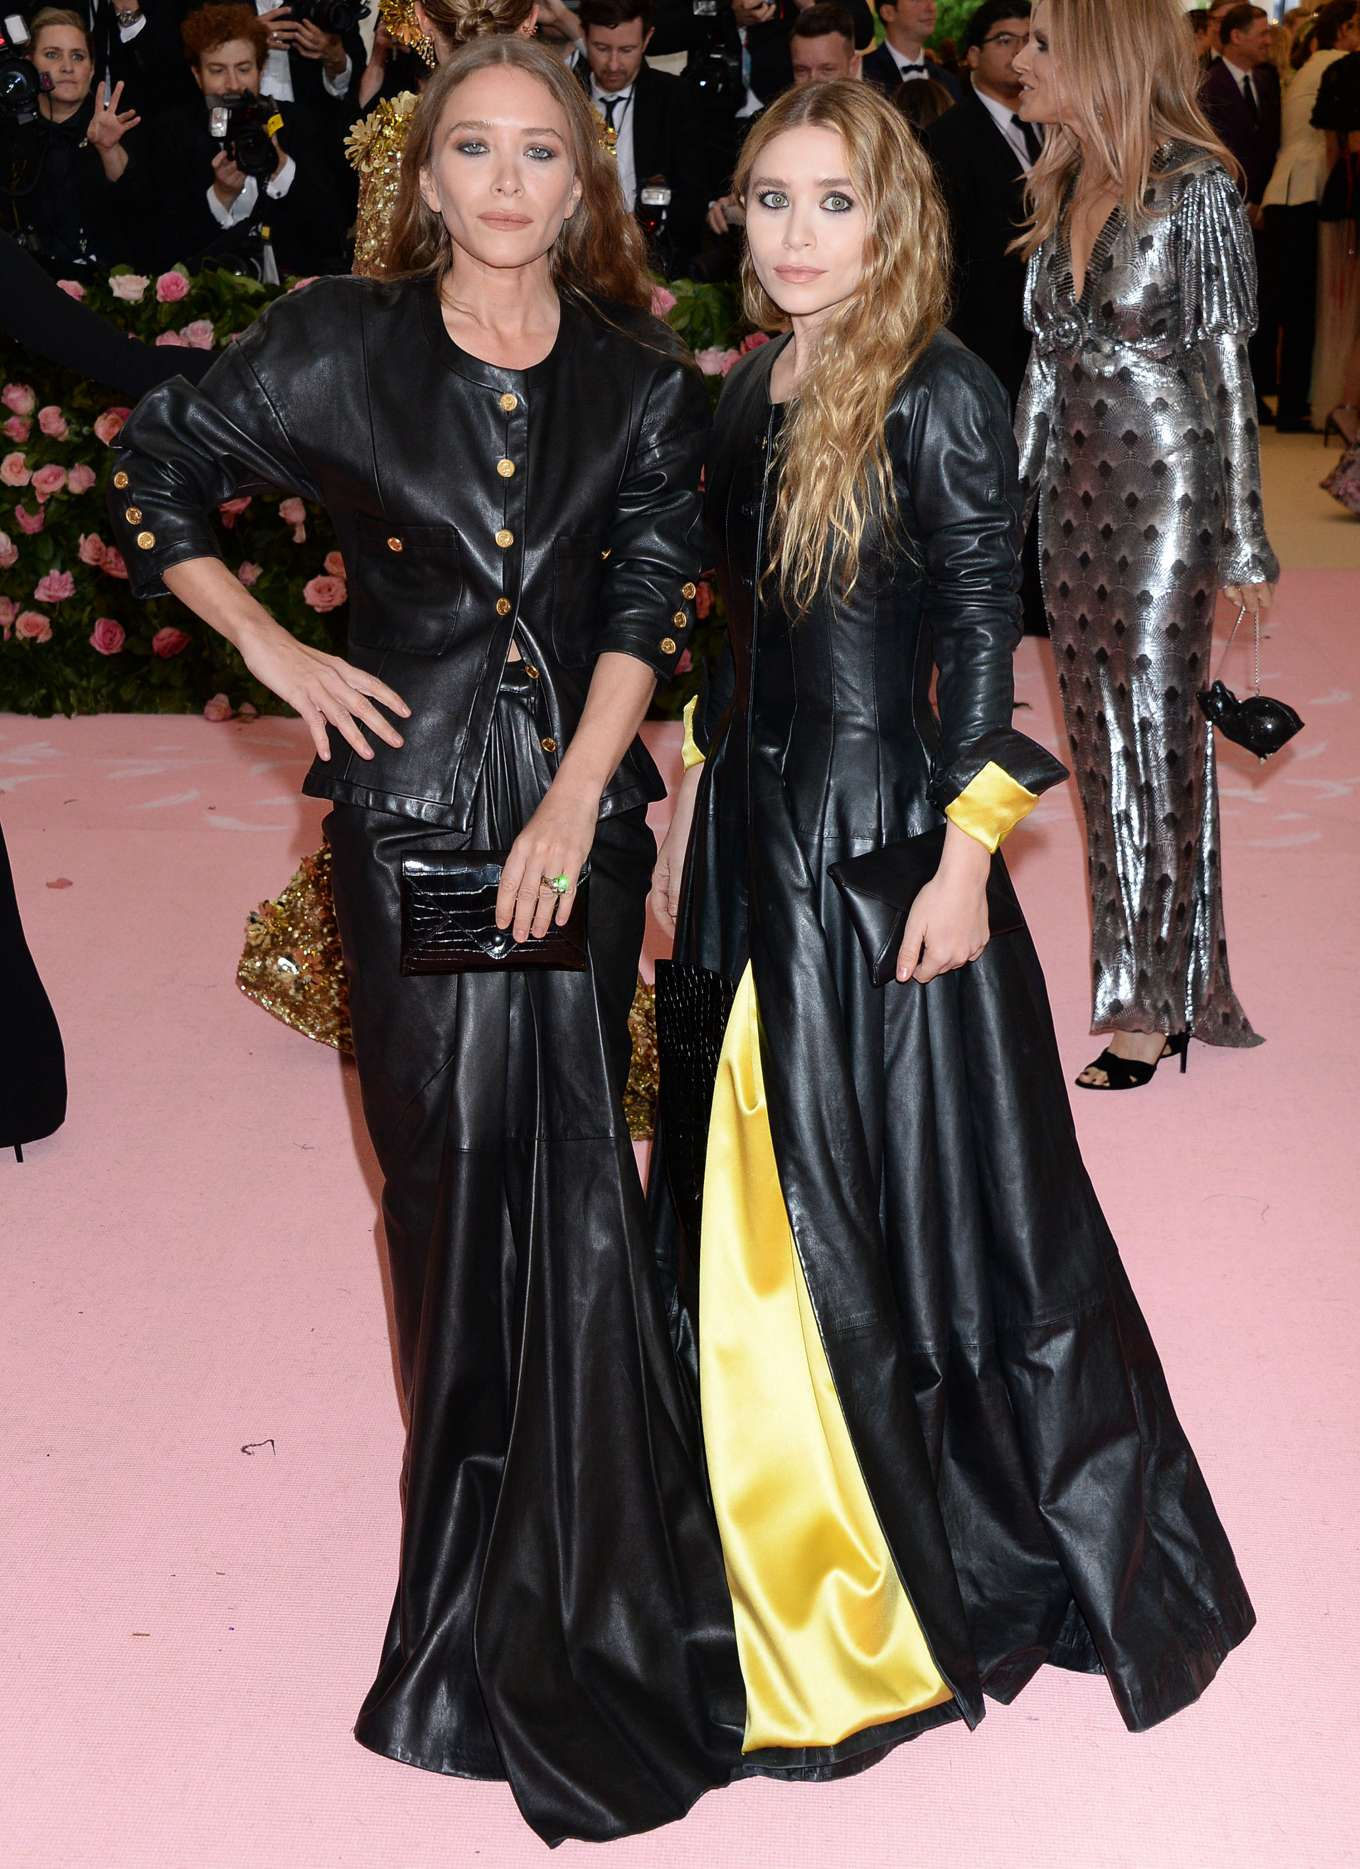 Ashley and Mary Kate Olsen - 2019 Met Gala in NYC